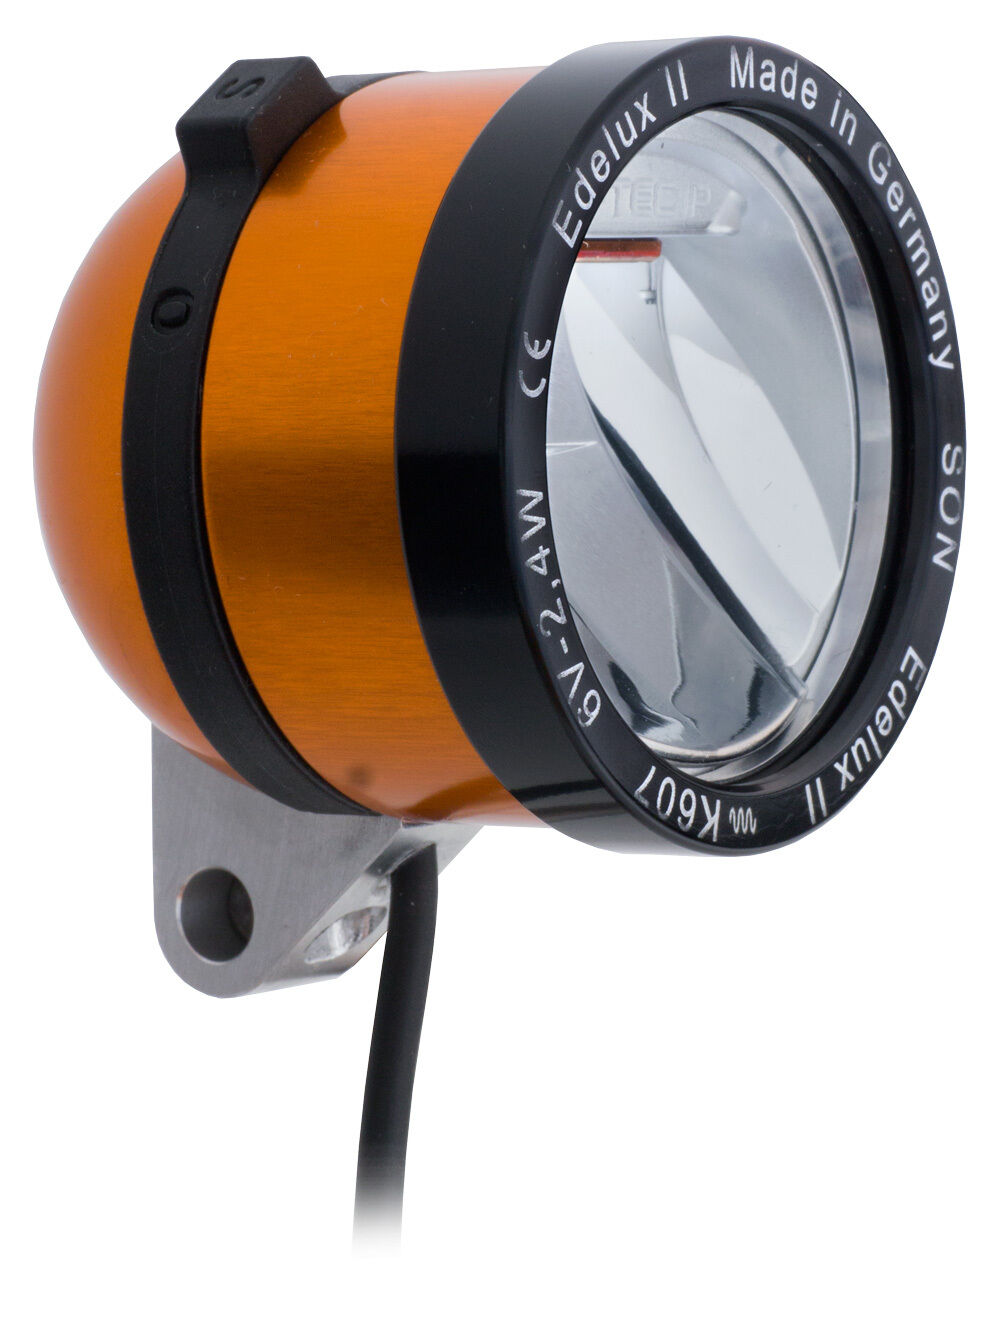 Novelty LED Headlight Son Edelux II Orange with 140 cm Cabel Loose Connections